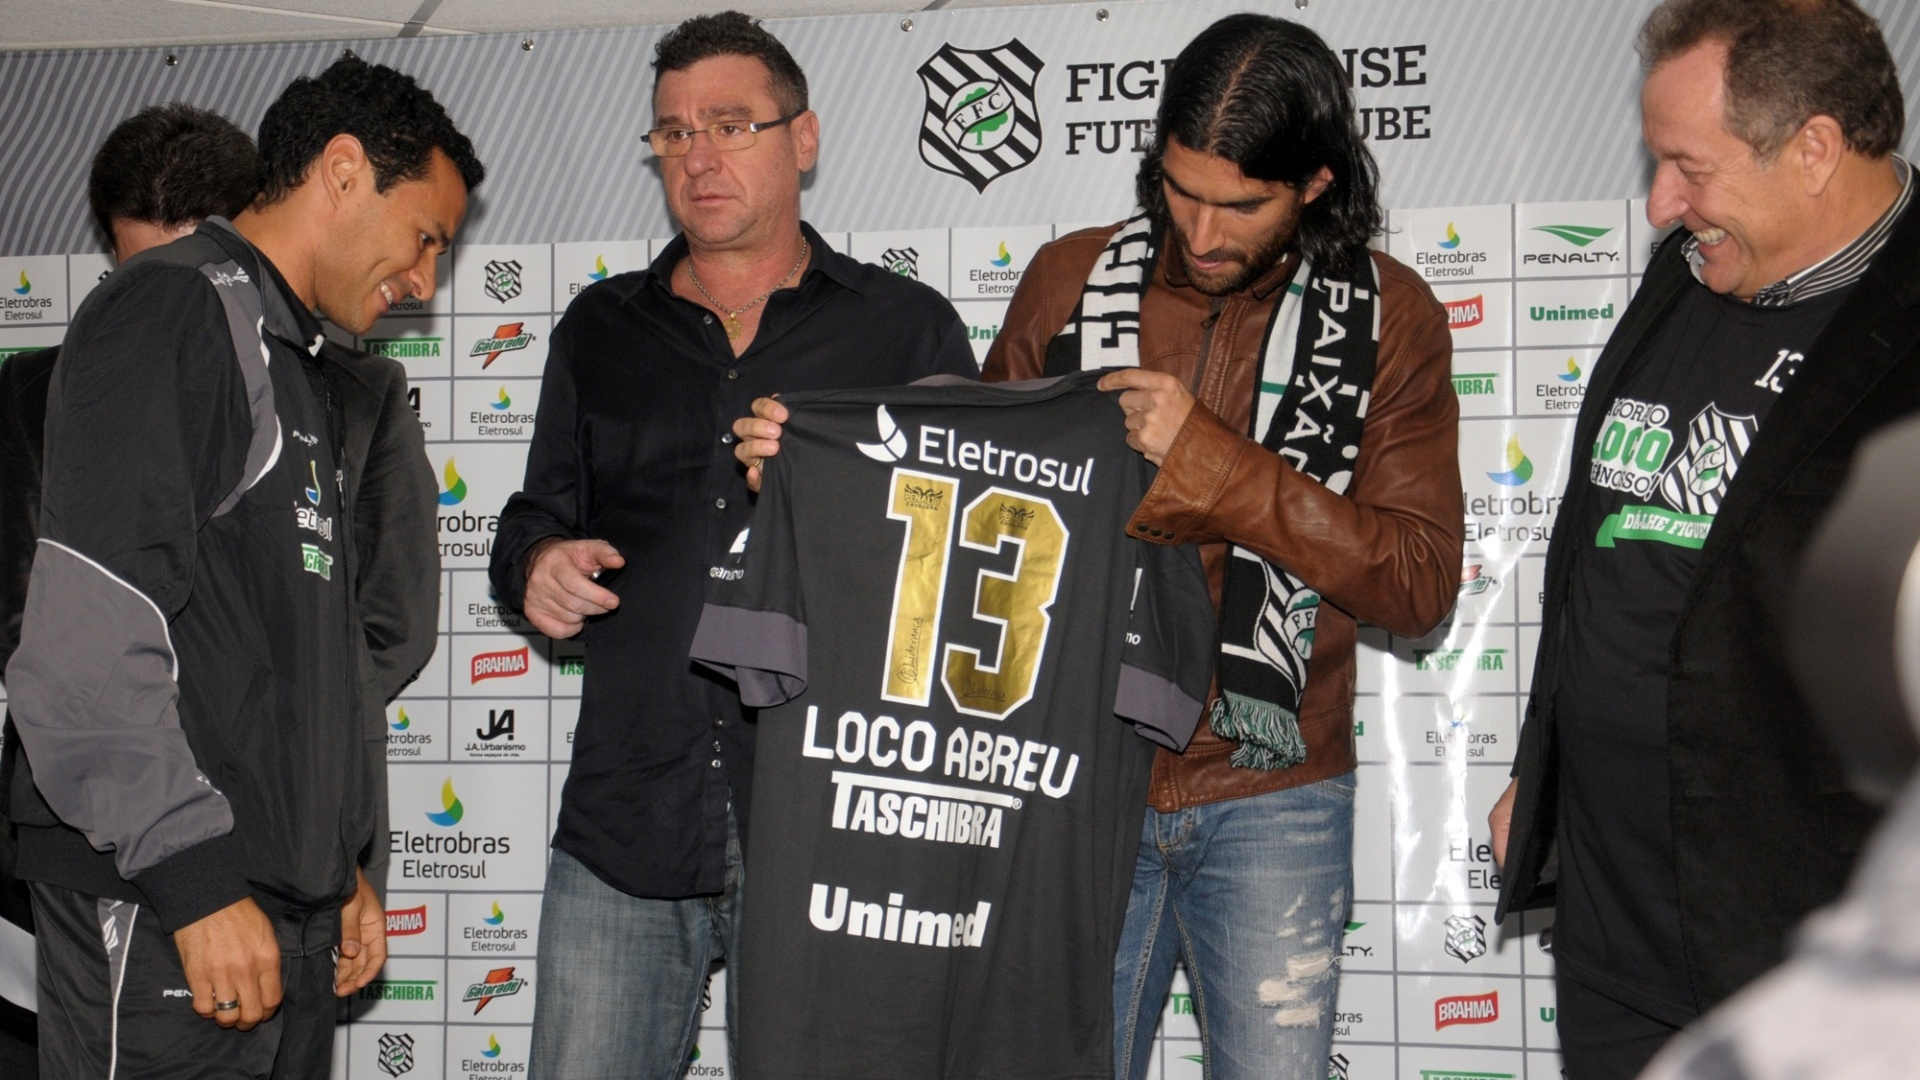 Loco Abreu  recebido com festa no Figueirense (07/07/2012)